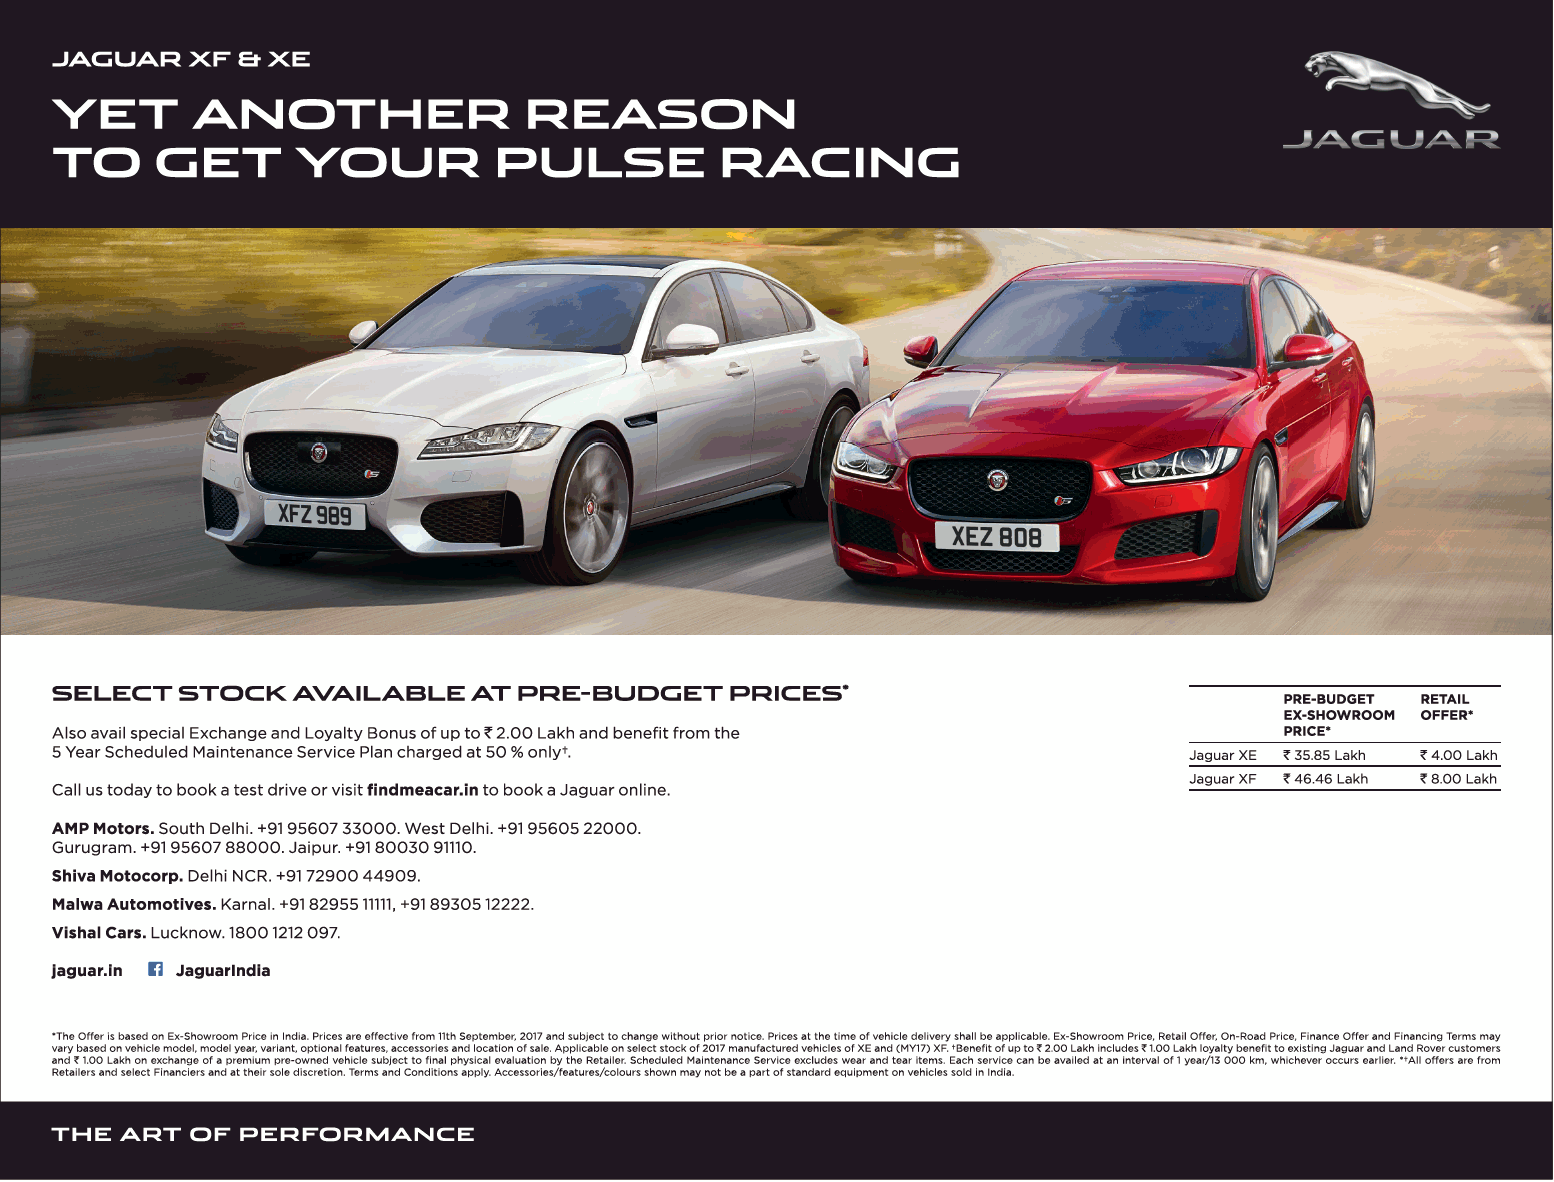 Jaguar Xf And Xe Cars Yet Another Reason To Get Your Pulse Racing Ad